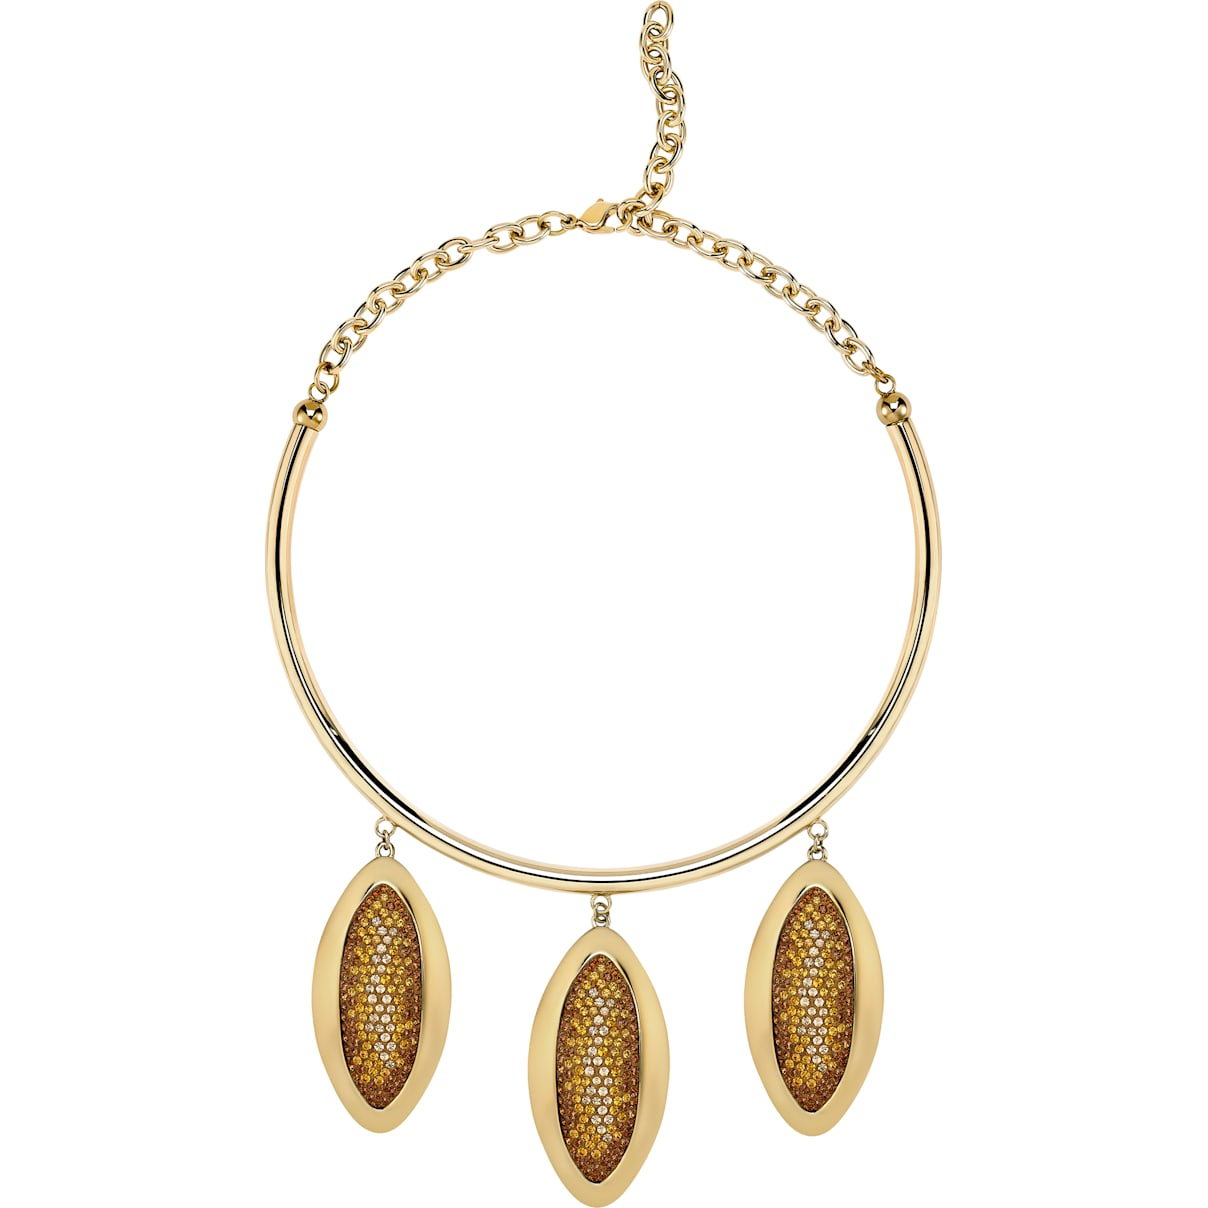 Swarovski Evil Eye Statement Necklace, Brown, Gold-tone plated